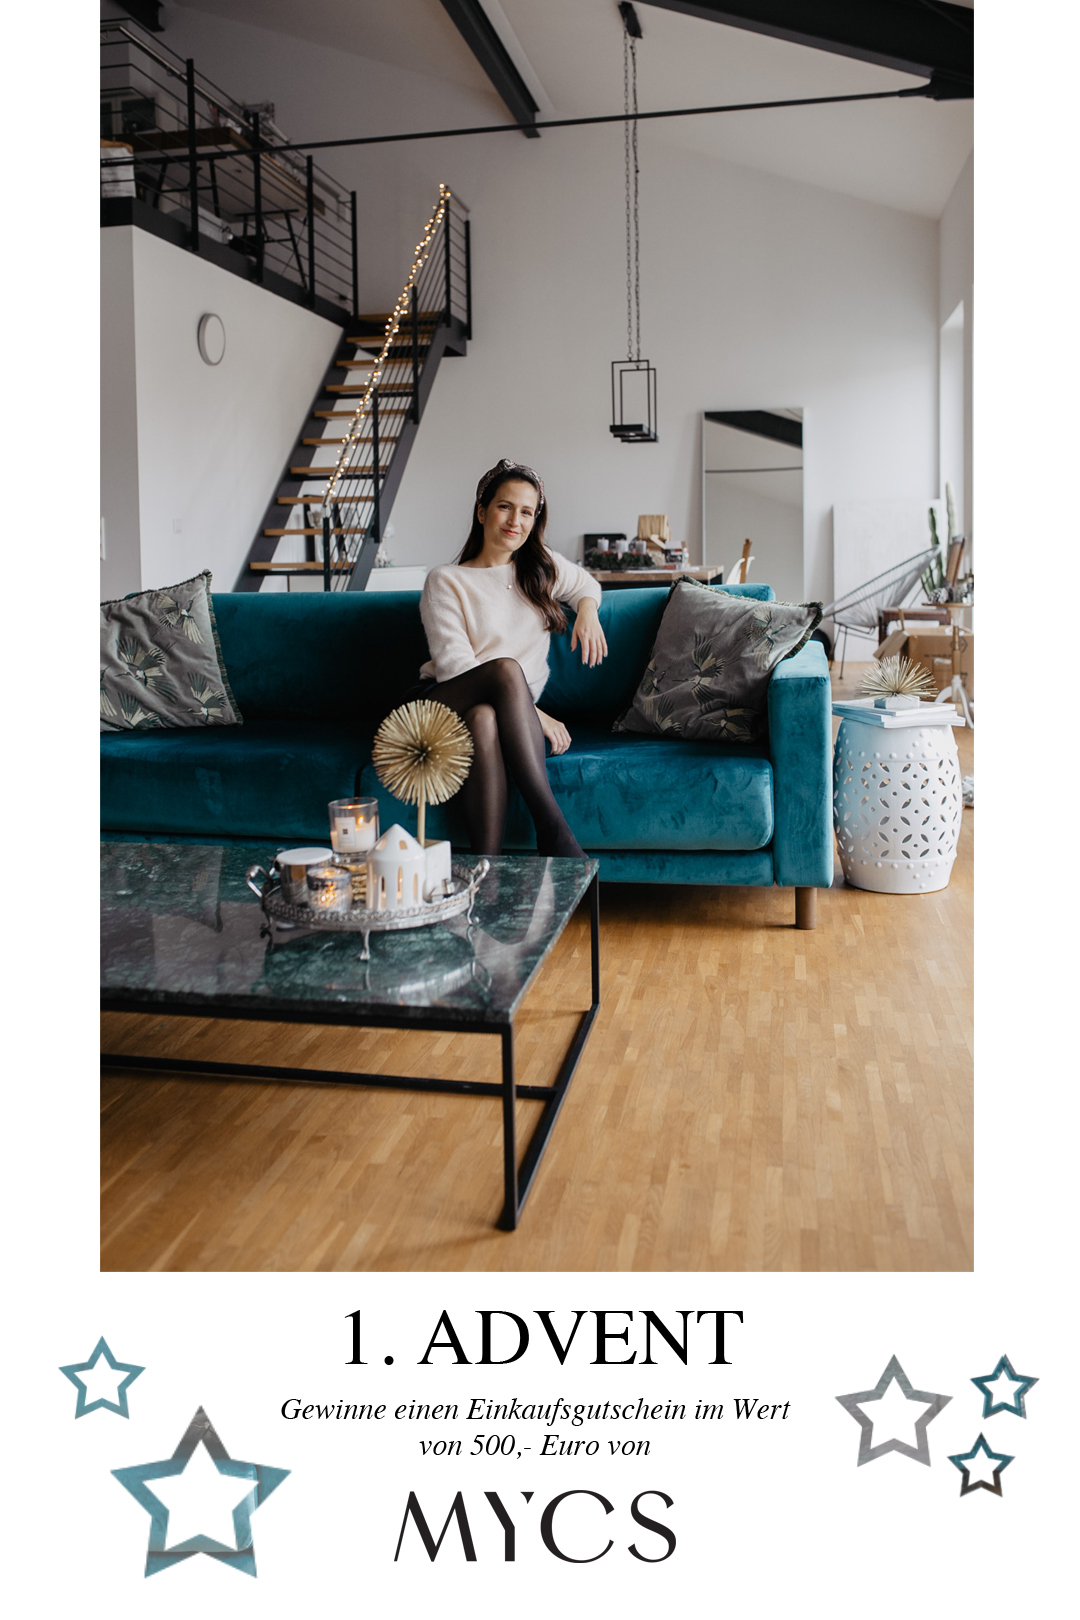 1. Advent mit MYCS - Pieces of Mariposa // Fashion & Lifestyle Blogger aus Nürnberg